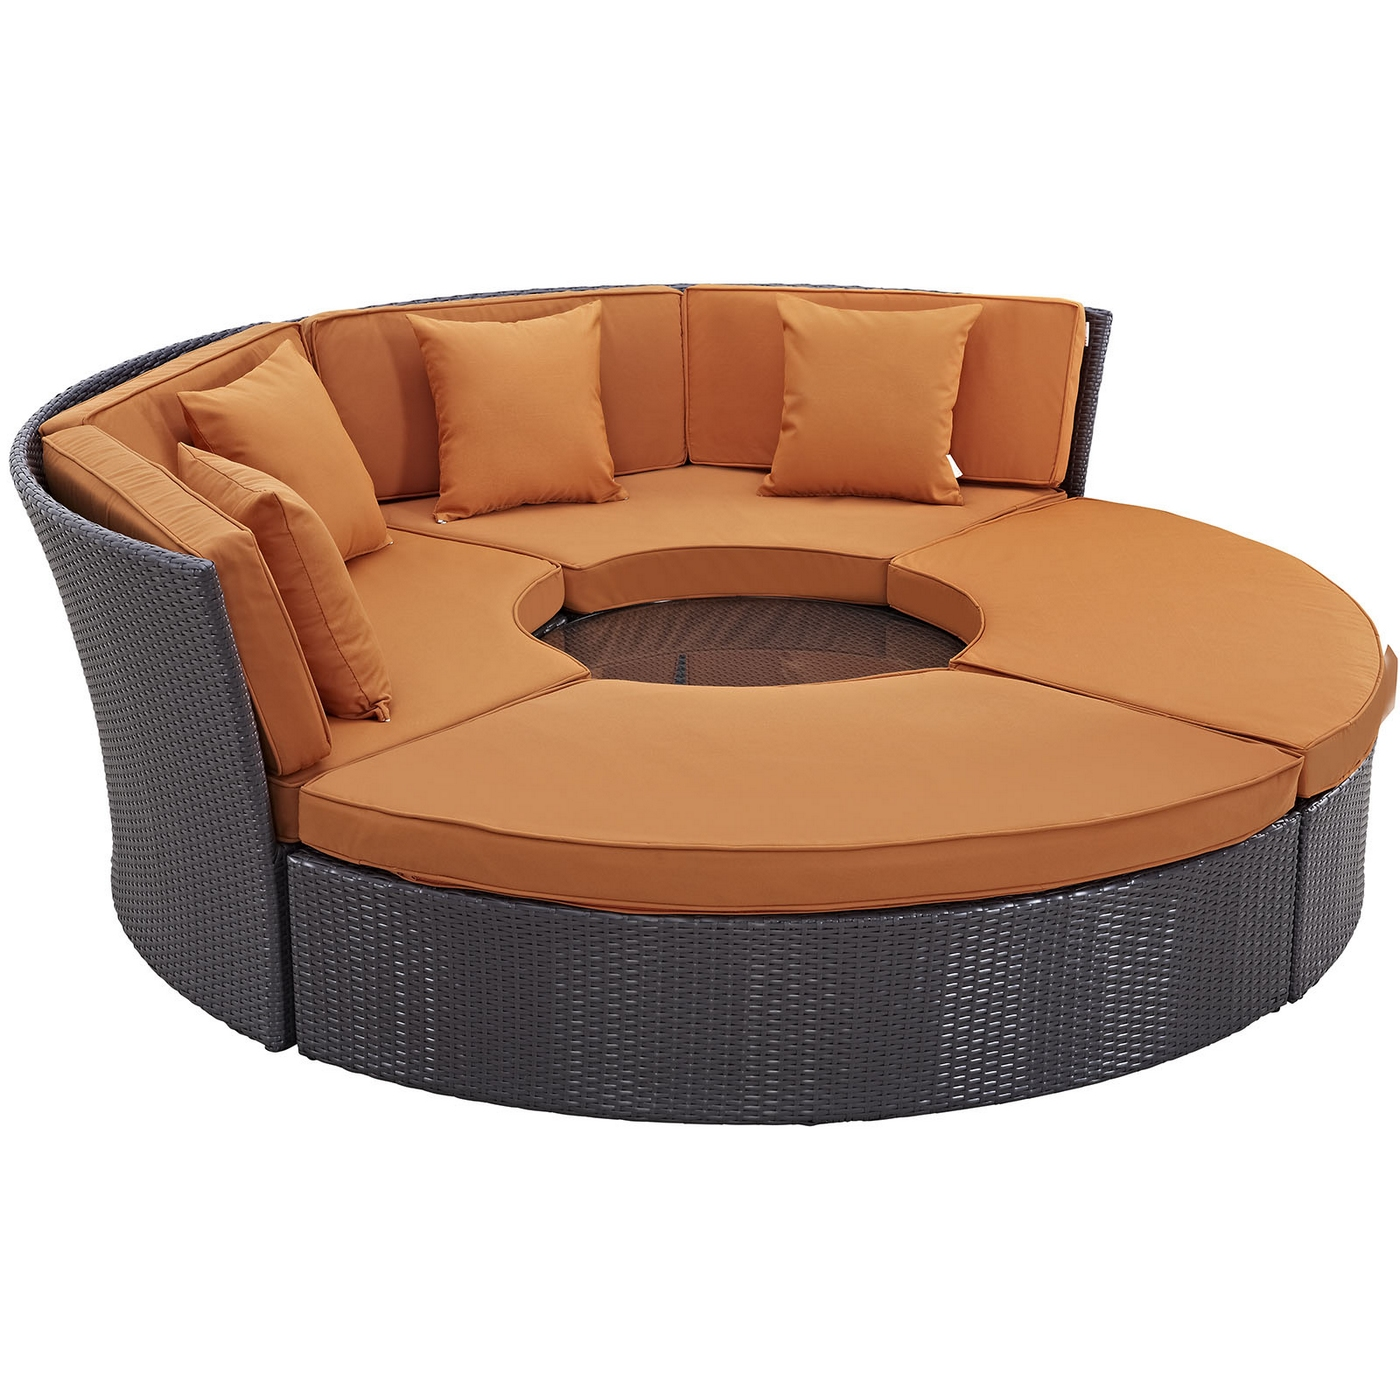 Image is loading convene modular circular outdoor patio daybed set cushions